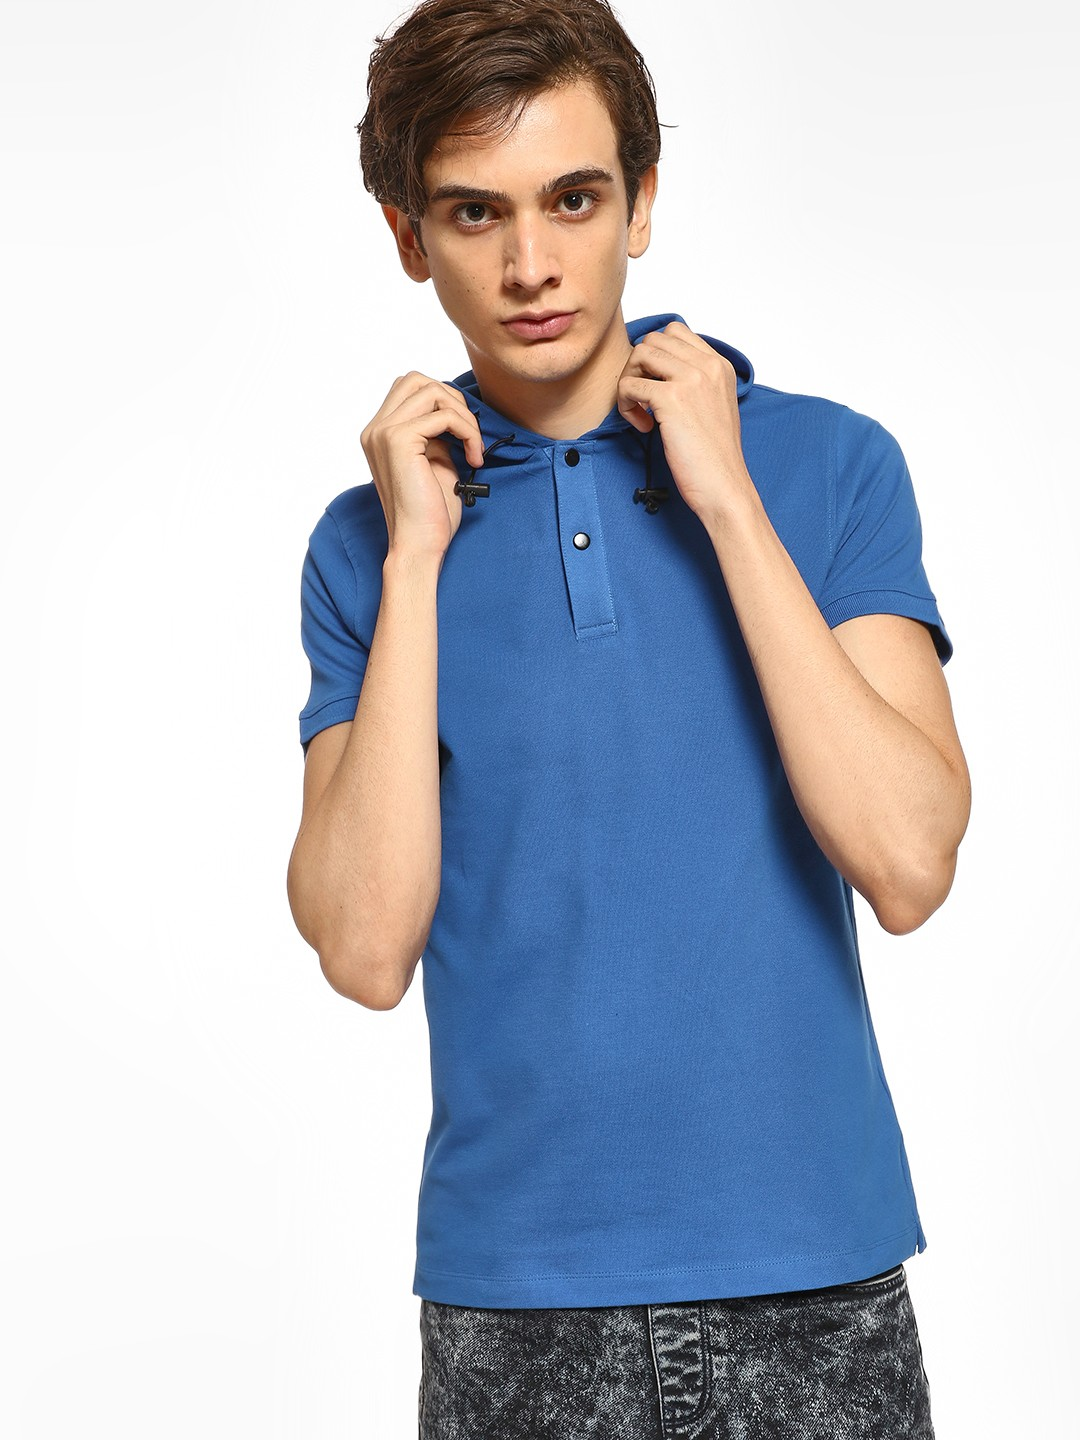 Kenneth Cole Blue Basic Pique Hooded T-Shirt 1